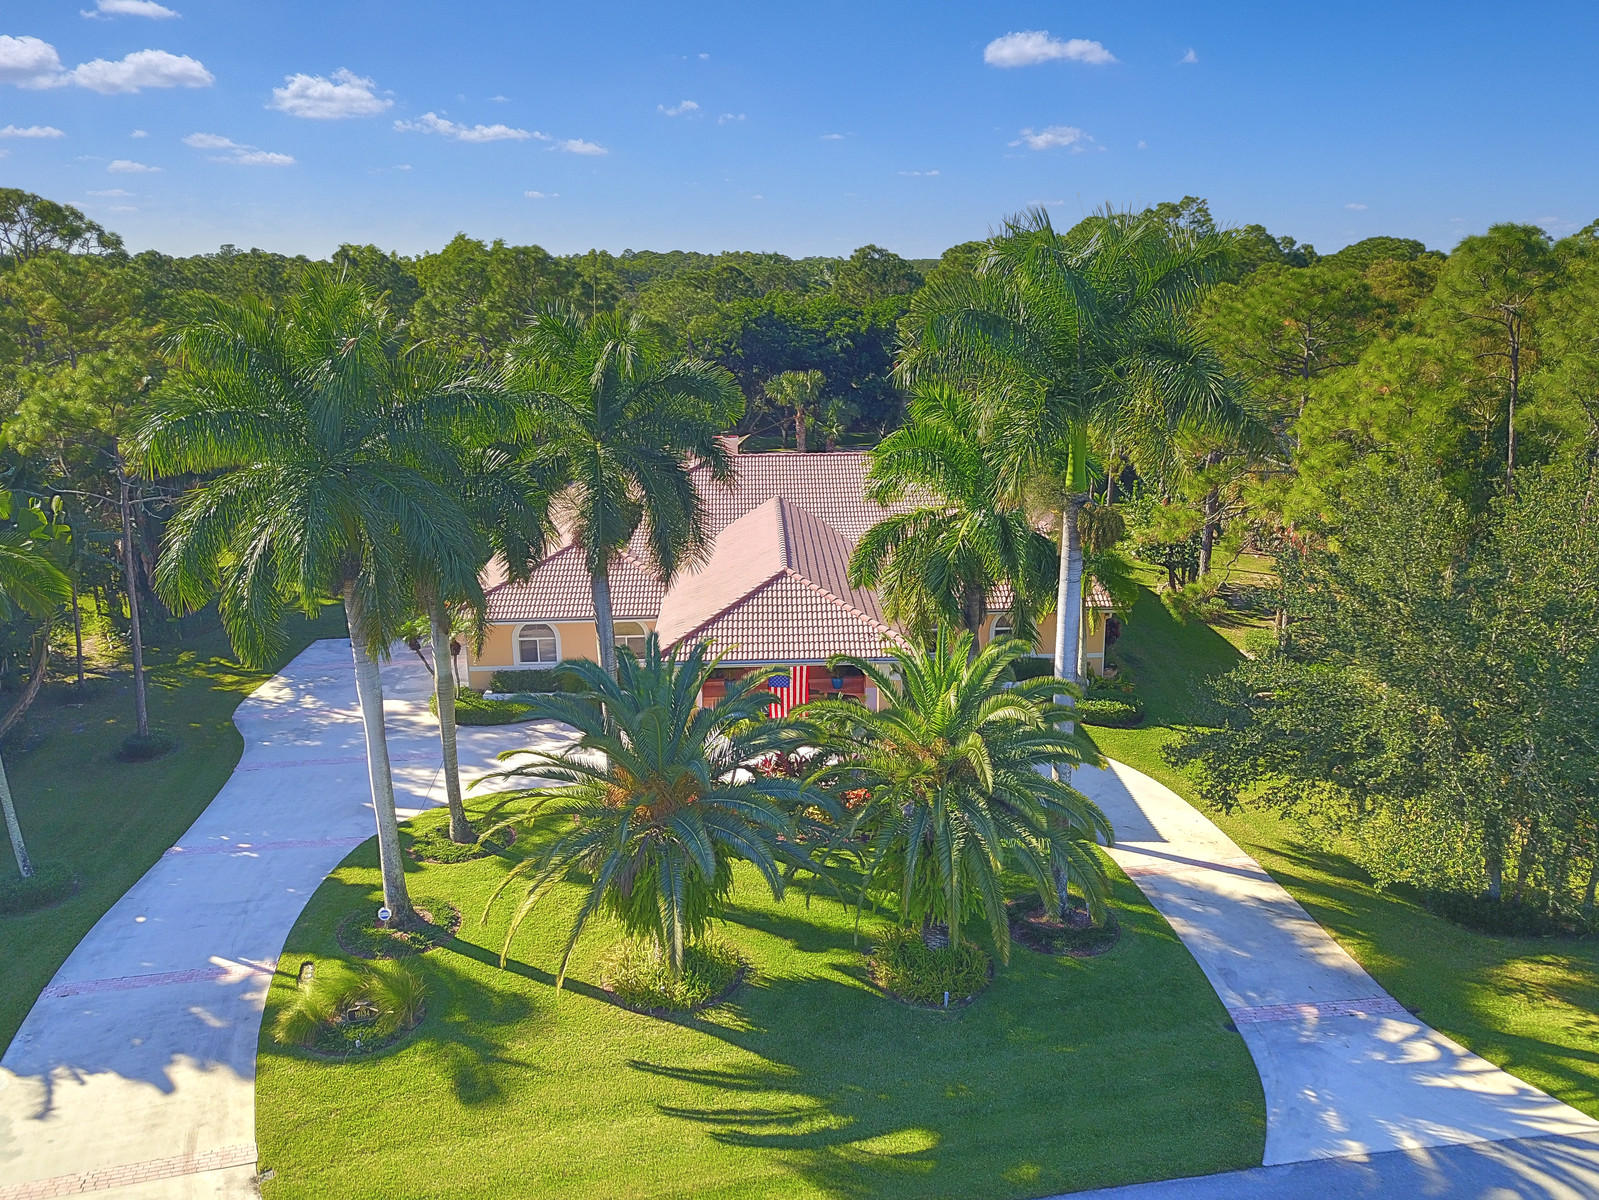 19134 Old Trail Drive, Jupiter, Florida 33478, 4 Bedrooms Bedrooms, ,3.1 BathroomsBathrooms,Single Family,For Sale,RANCH COLONY,Old Trail,RX-10479927